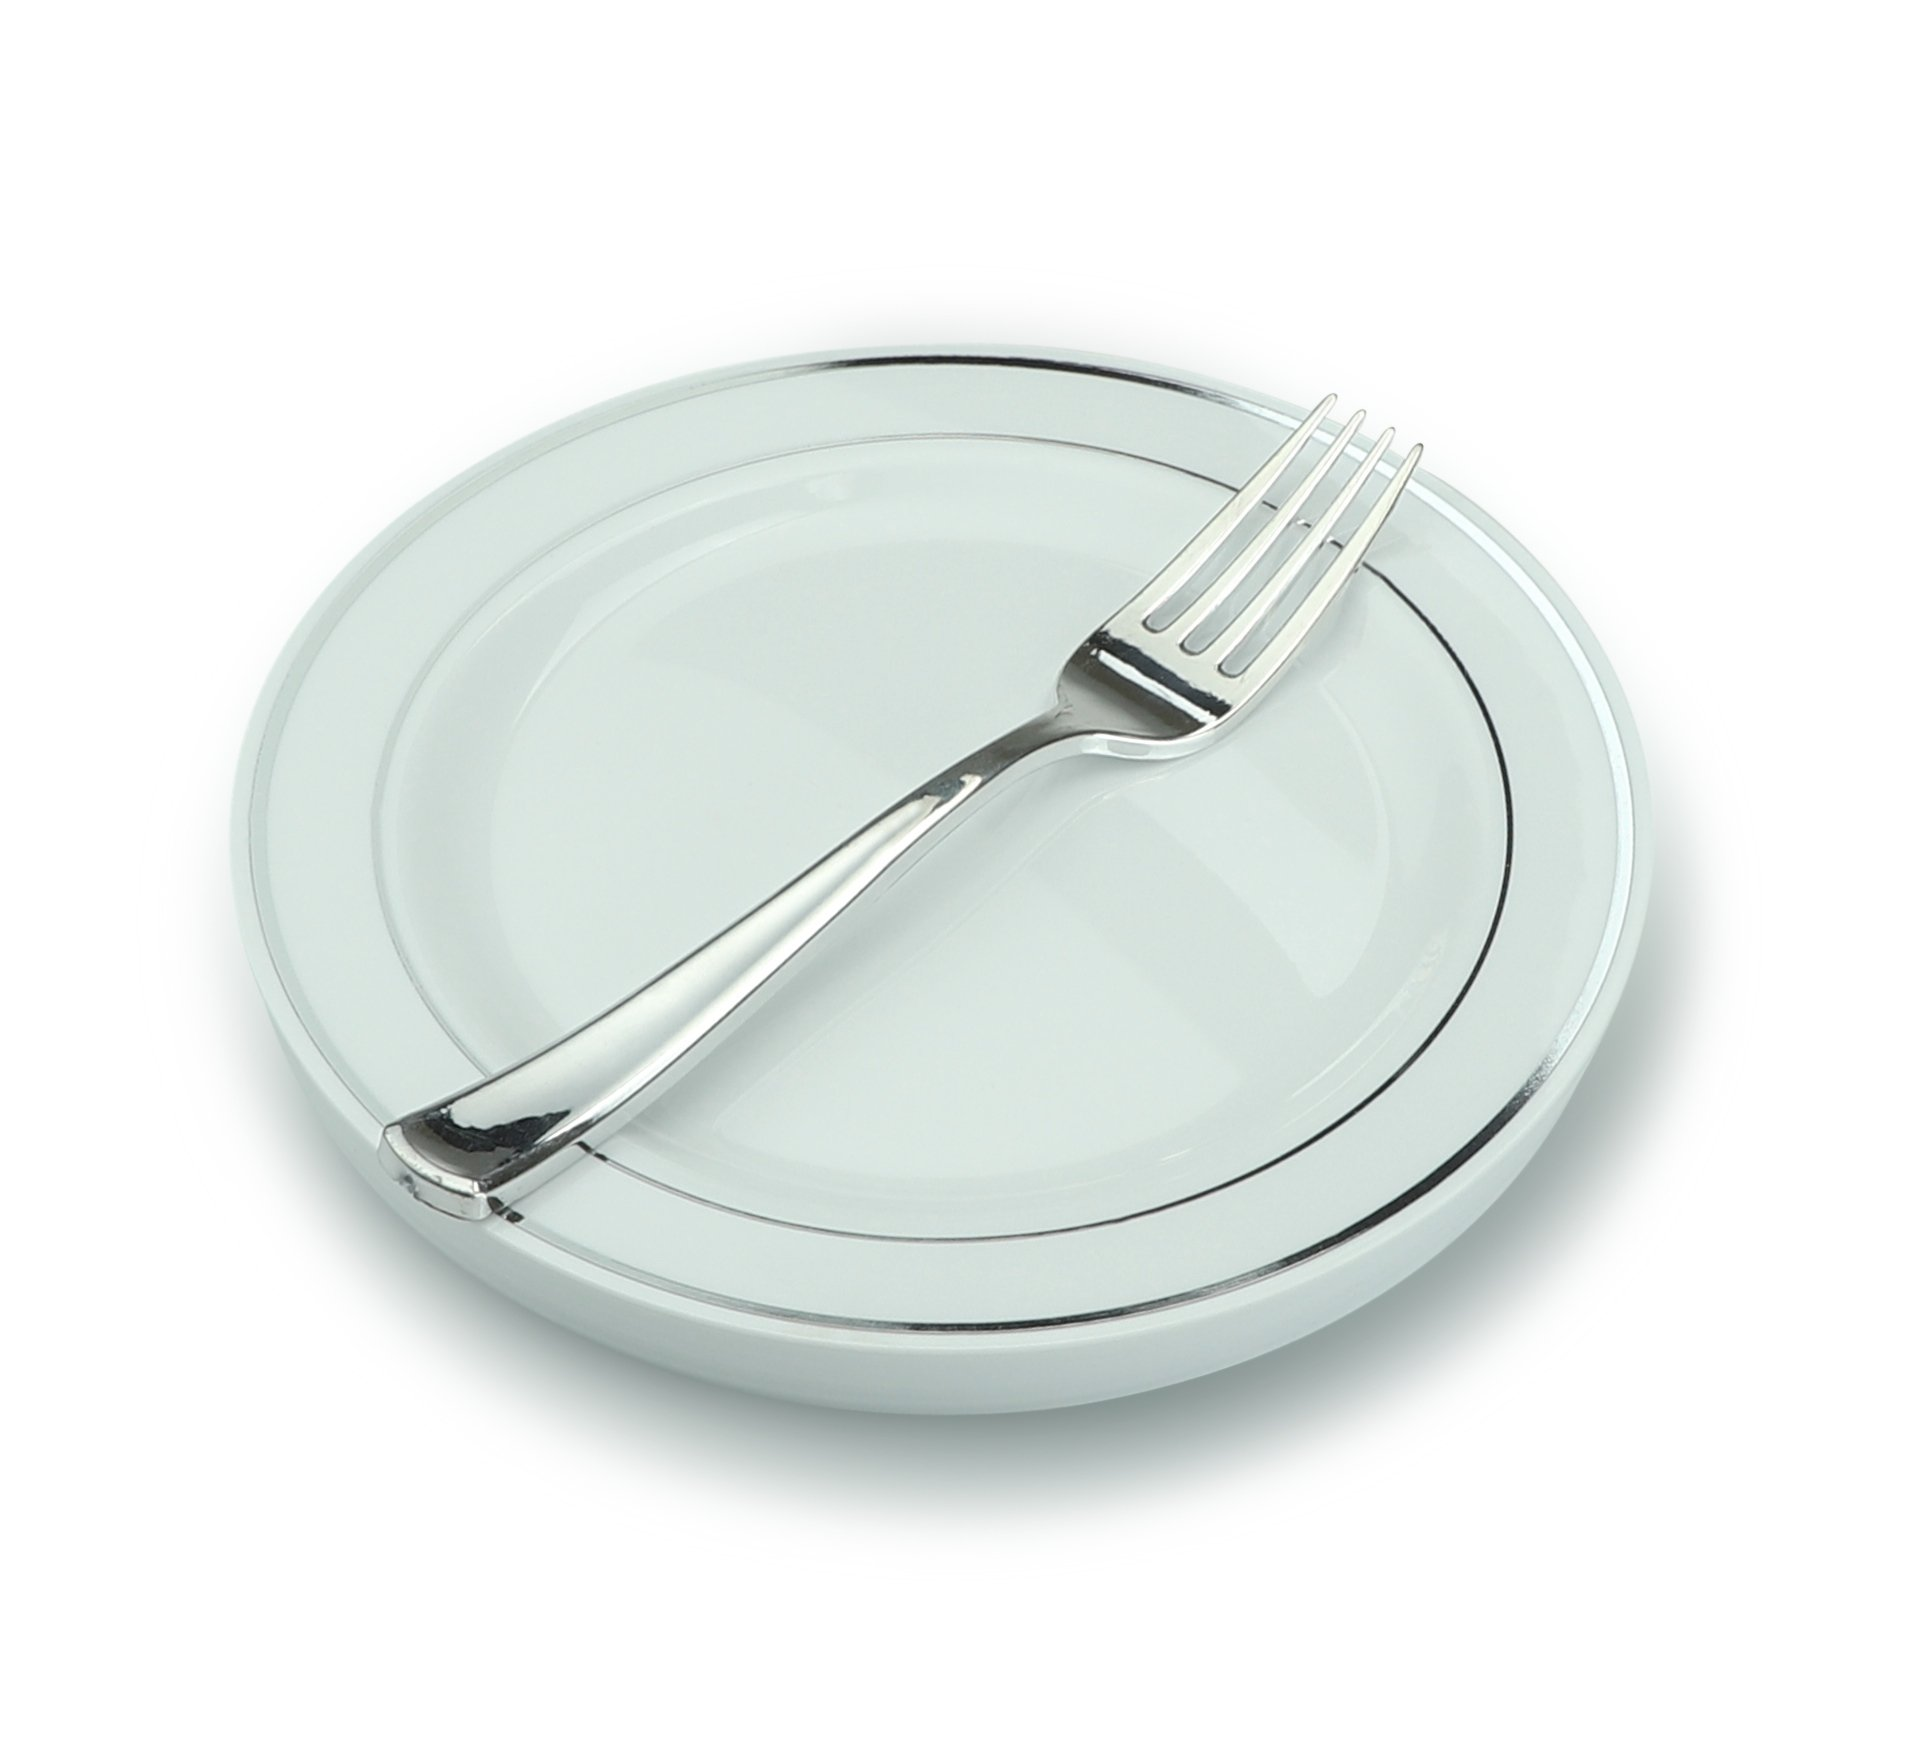 '' OCCASIONS'' Wedding Party Heavyweight Disposable Plastic 7.5'' Silver Rim Plates + Forks set (Appetizer/Dessert Setting, 60 Settings)